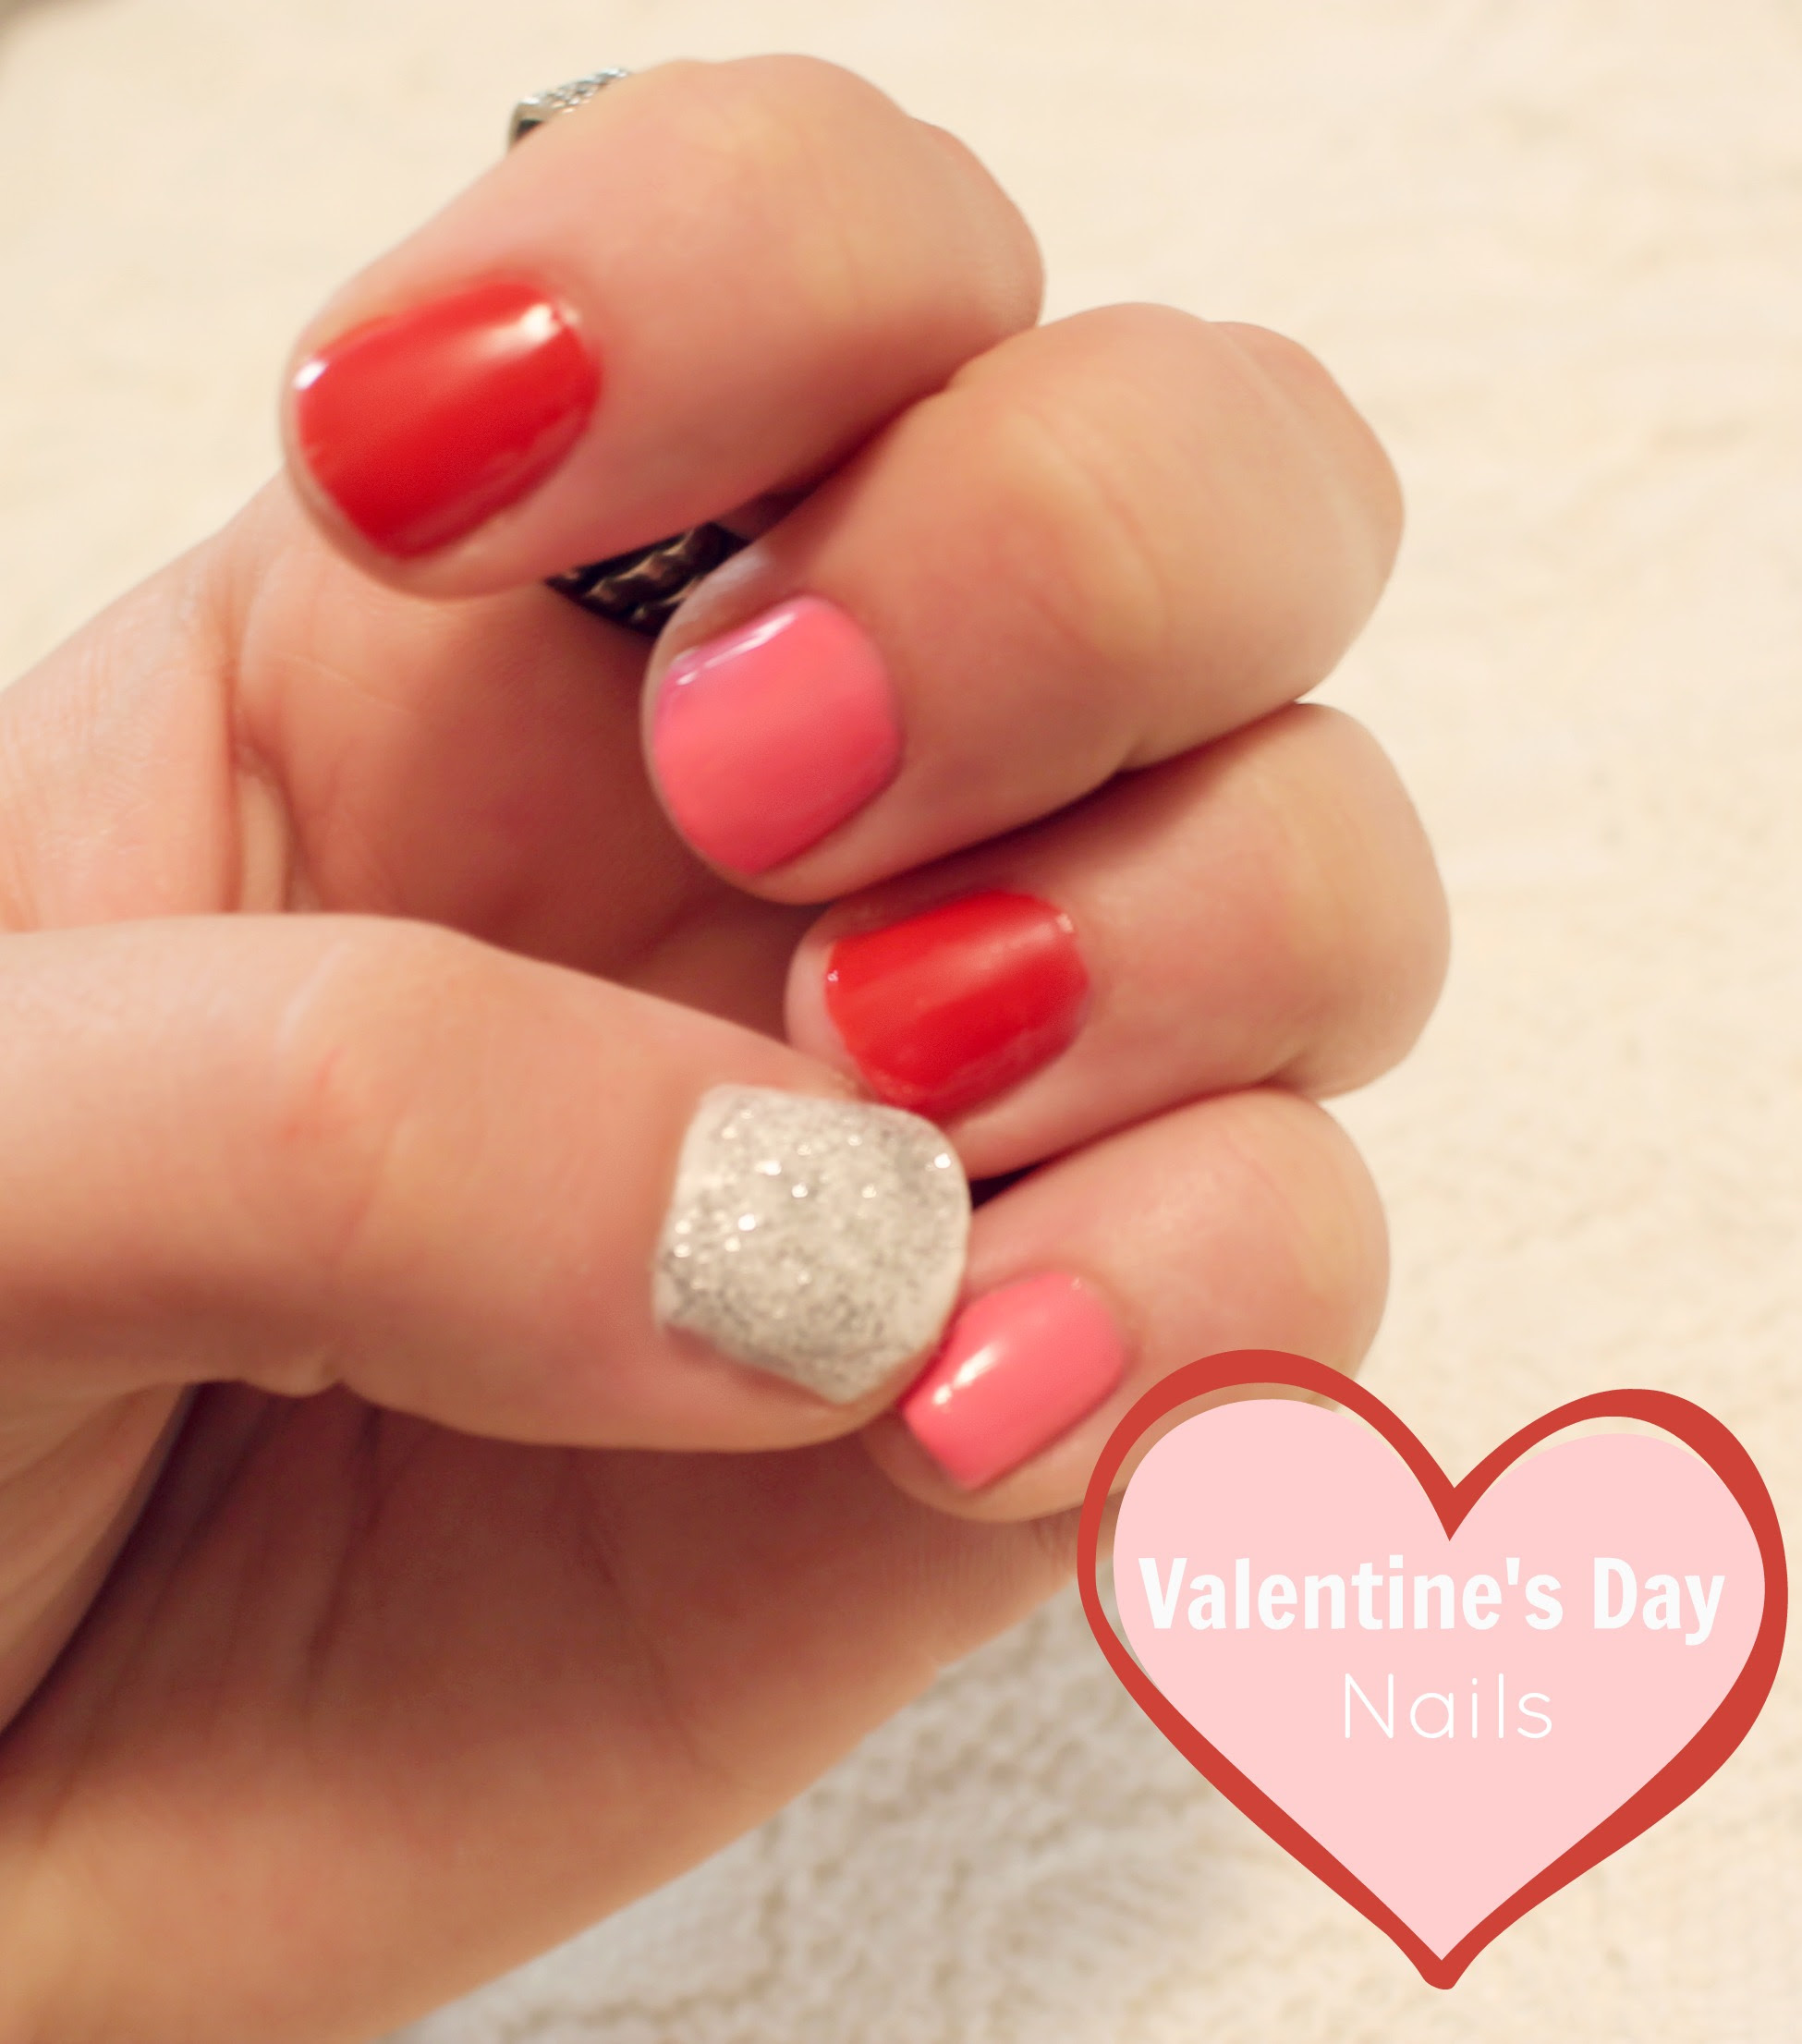 http://rachelslookbook.com/wp-content/uploads/2013/02/Valentines-Day-Nails2.jpg